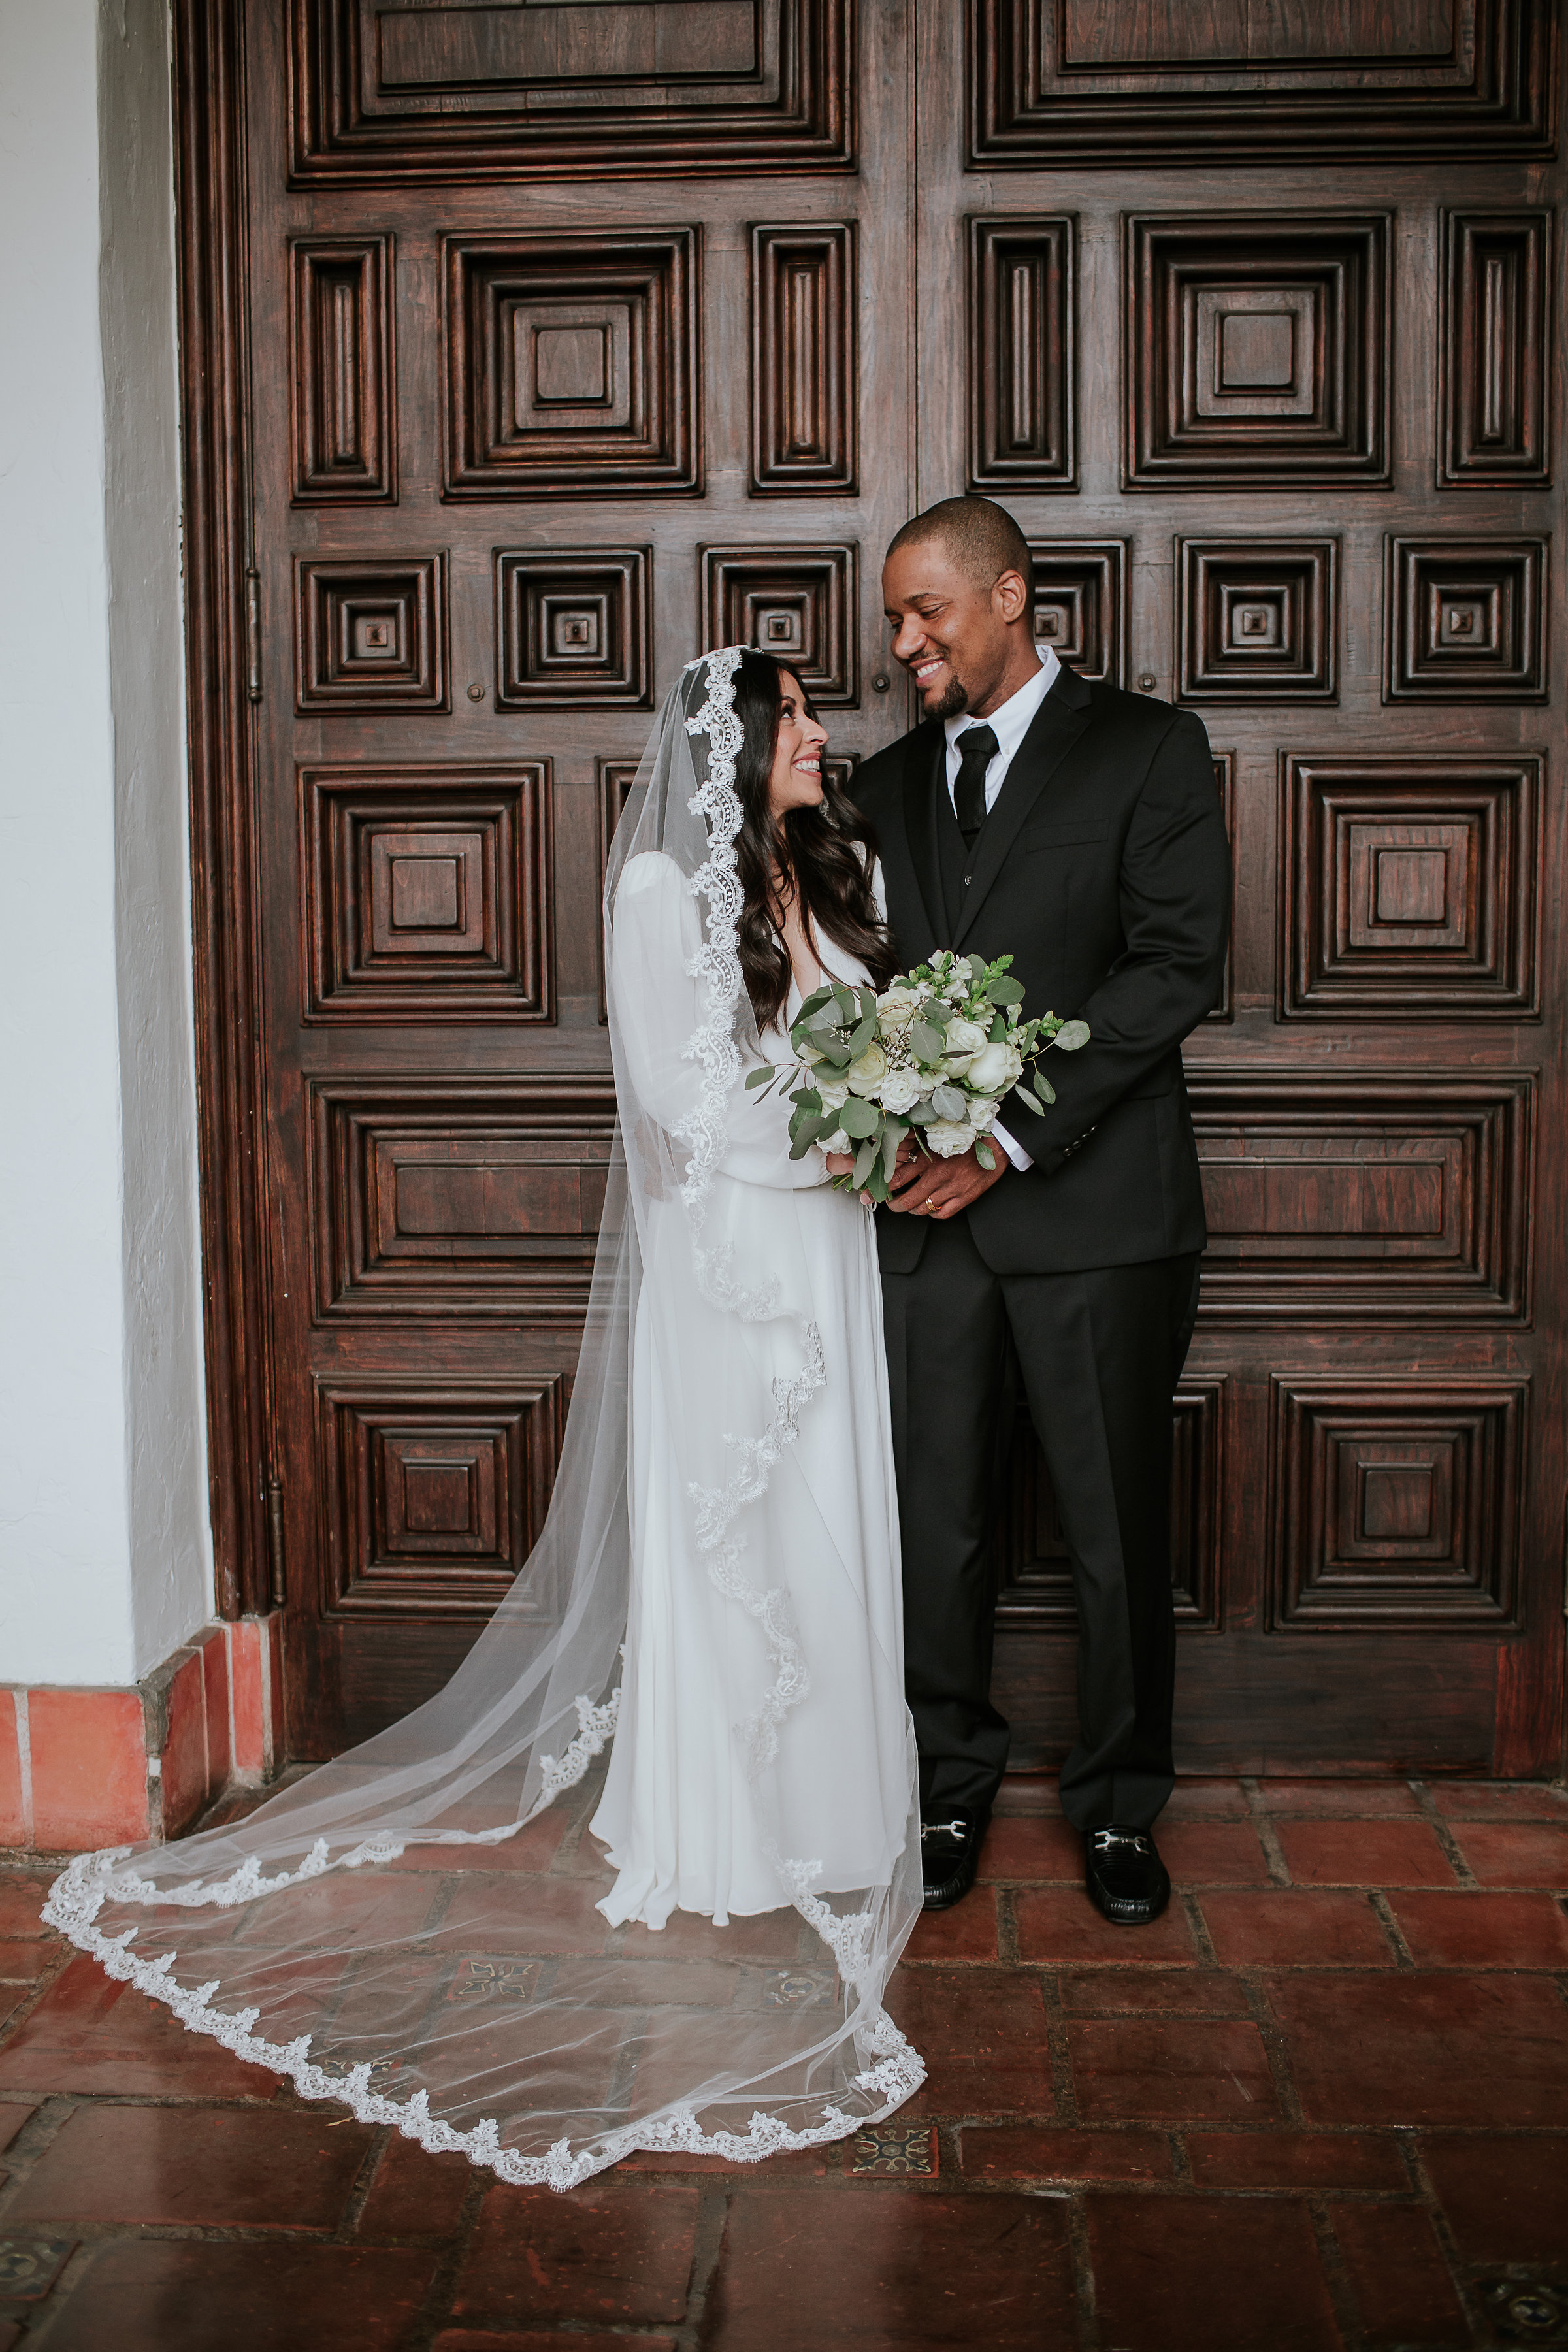 GabrielaandDeJuansantabarbaracourthouseweddingstellamaresweddingelopement-233.jpg